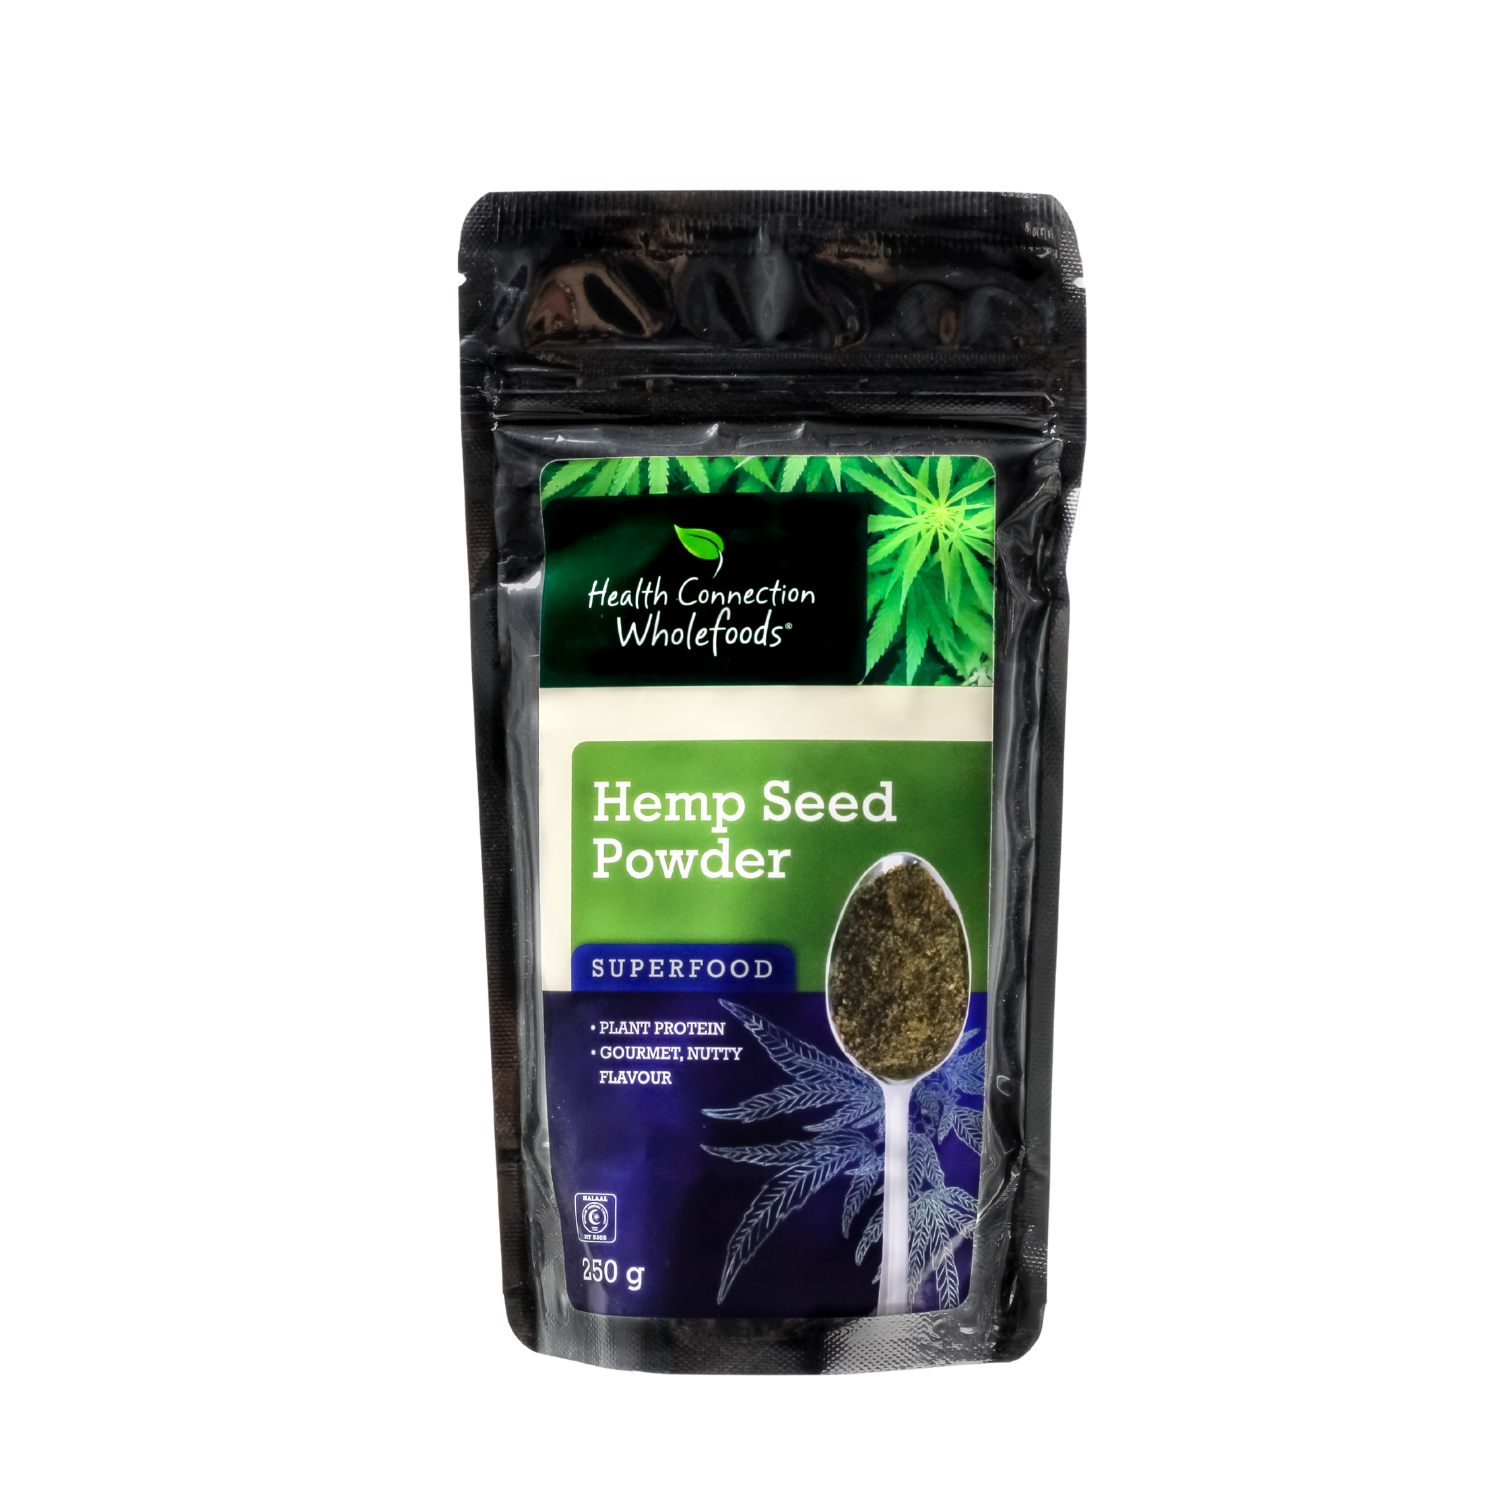 Hemp Seed Powder